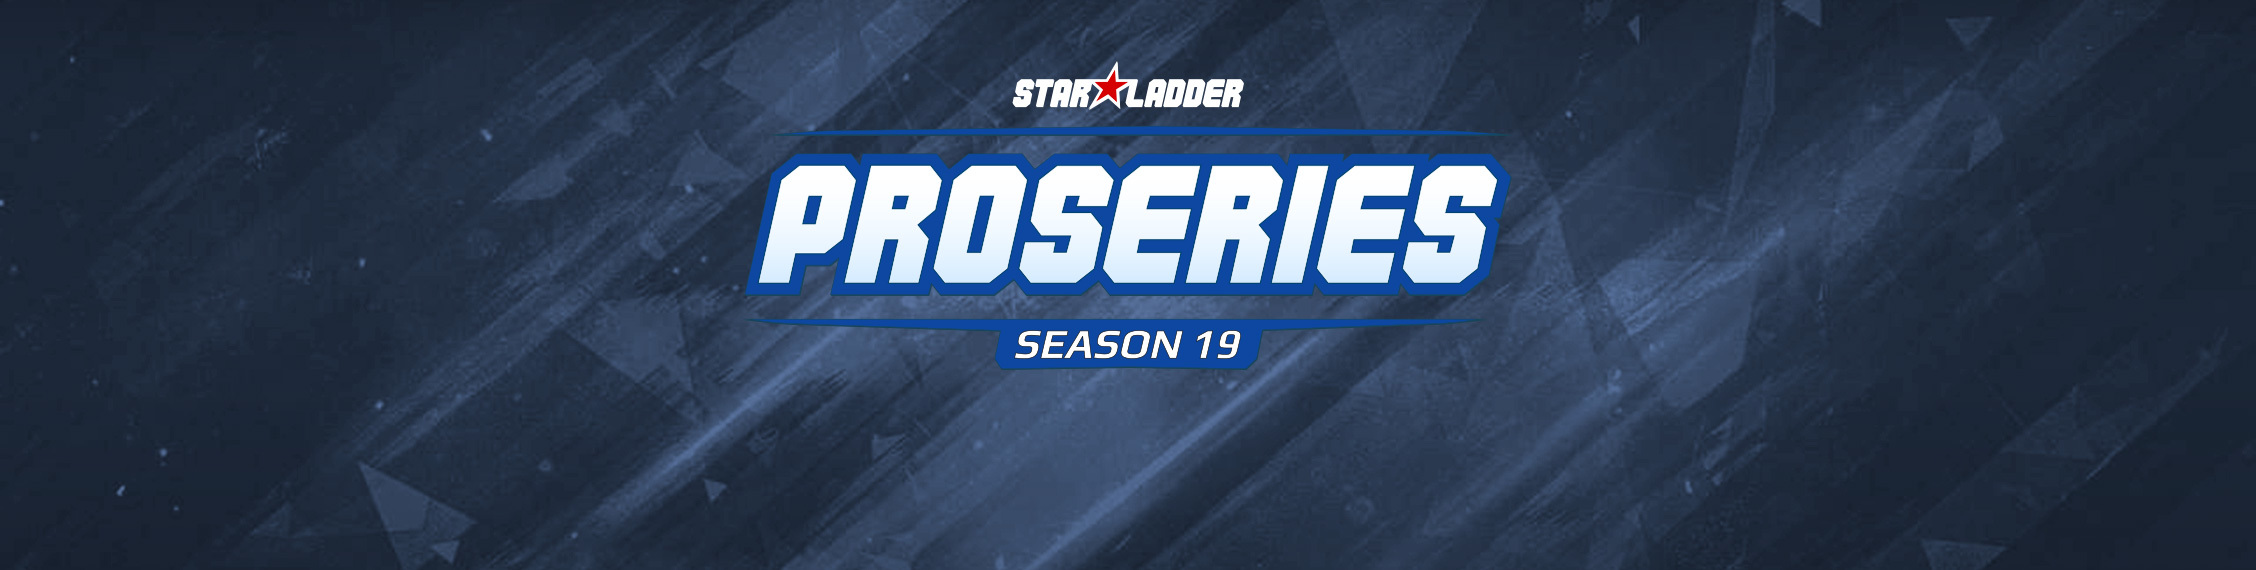 StarLadder Dota 2 ProSeries Season 19